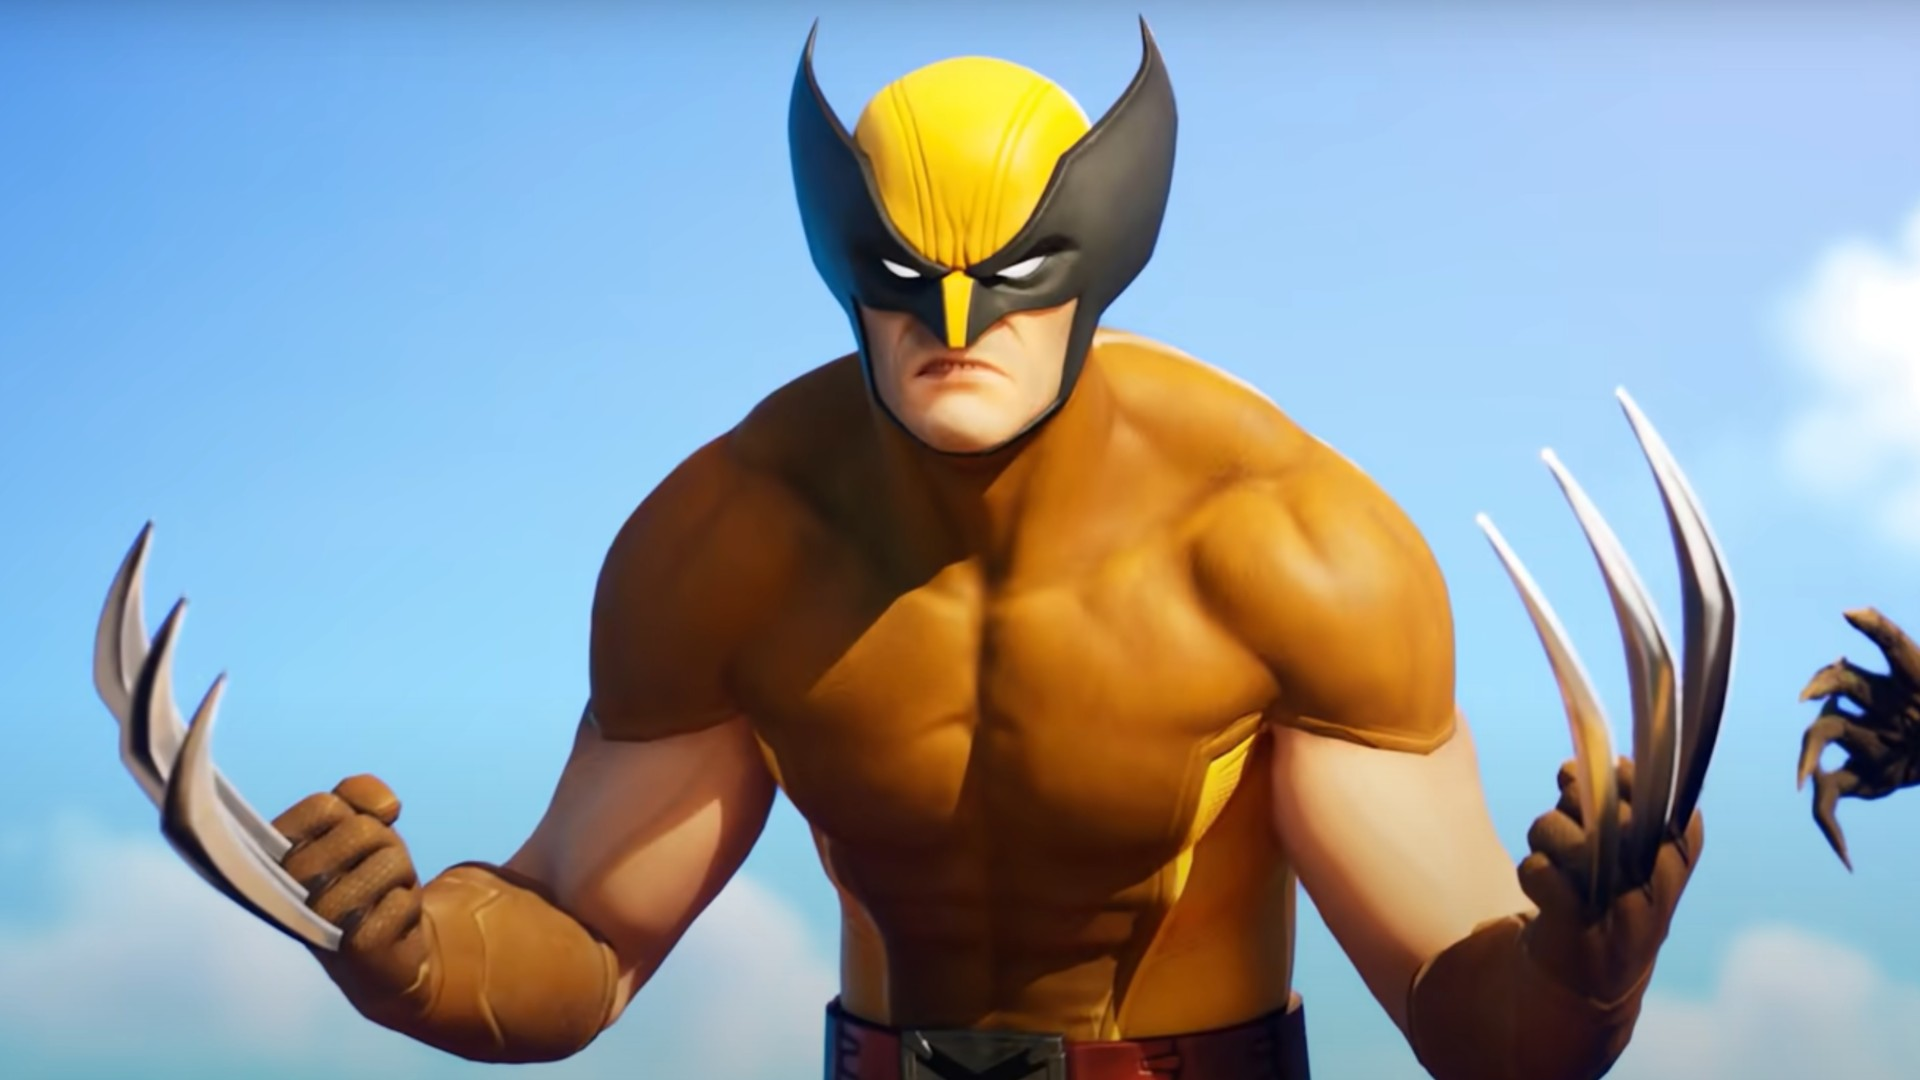 Wolverine Fortntie – Fortnite chapter two, season four is six if you've completed the following challenges, you'll be eligible to defeat wolverine in the field and unlock him as a playable skin.